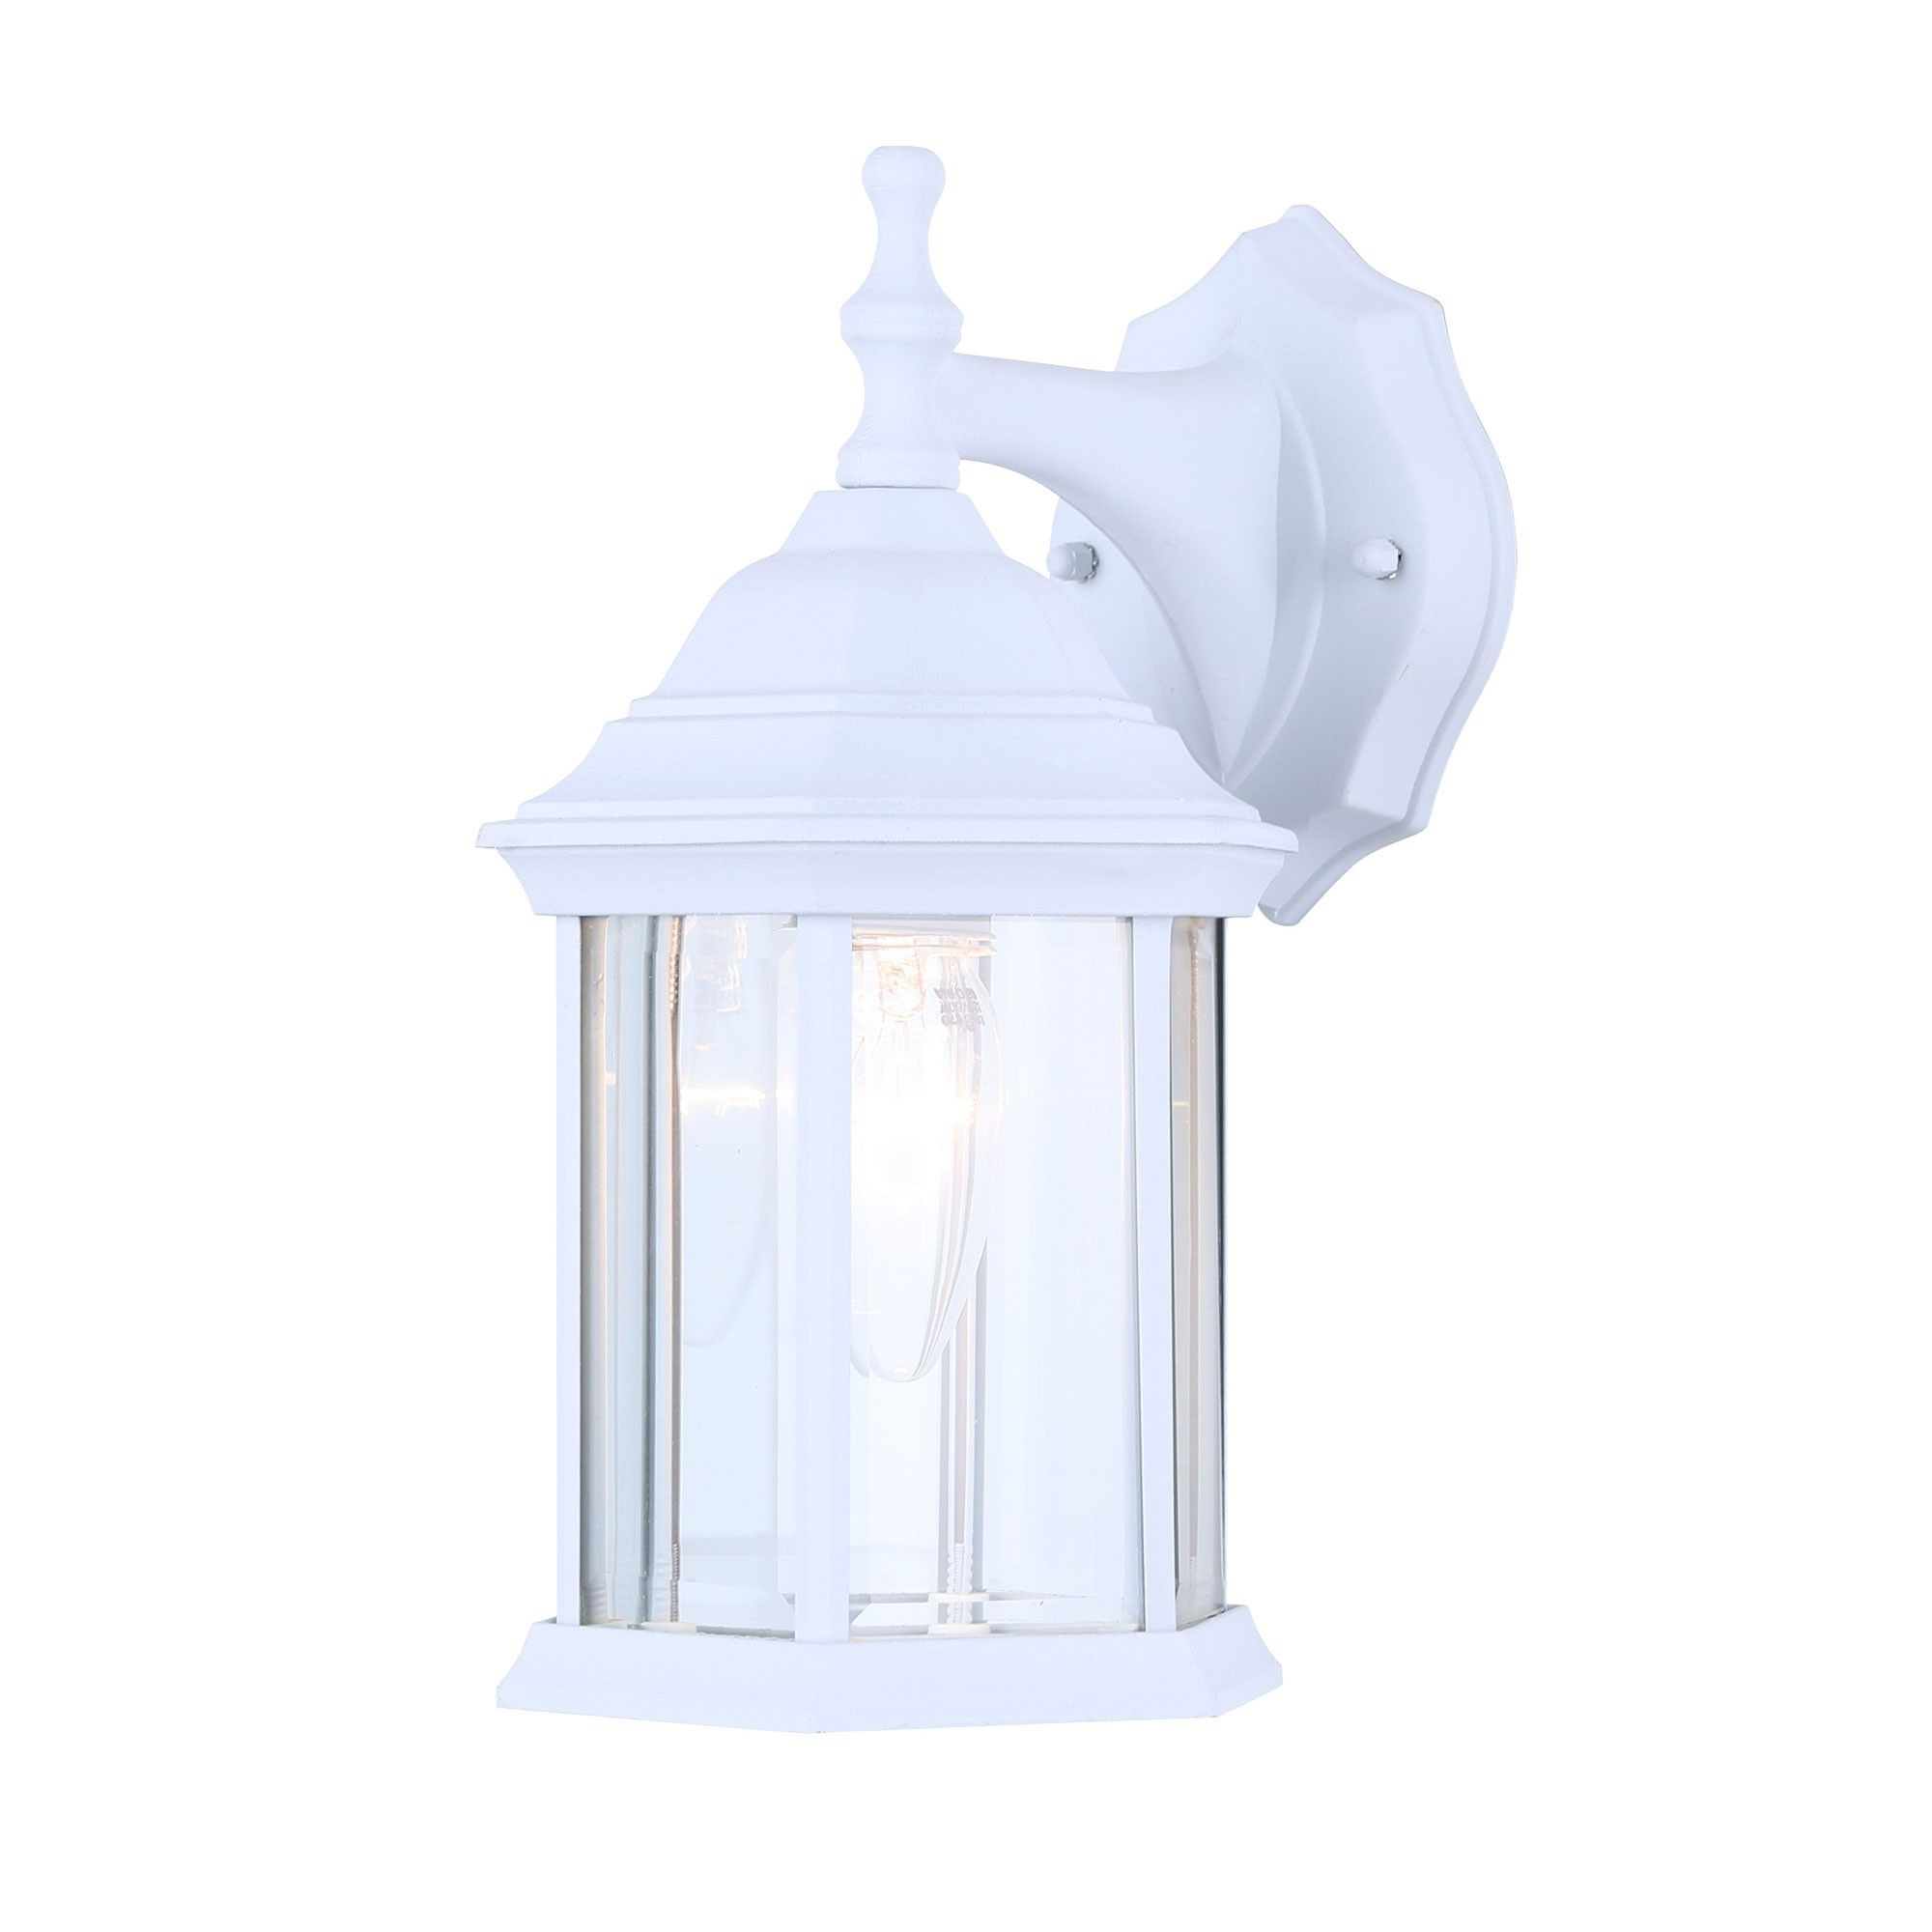 Canarm Iol4wh Exterior Outdoor Light Fixture Wall Lantern Sconce Beveled Glass White Outdoor Light Fixtures Exterior Light Fixtures Wall Lantern